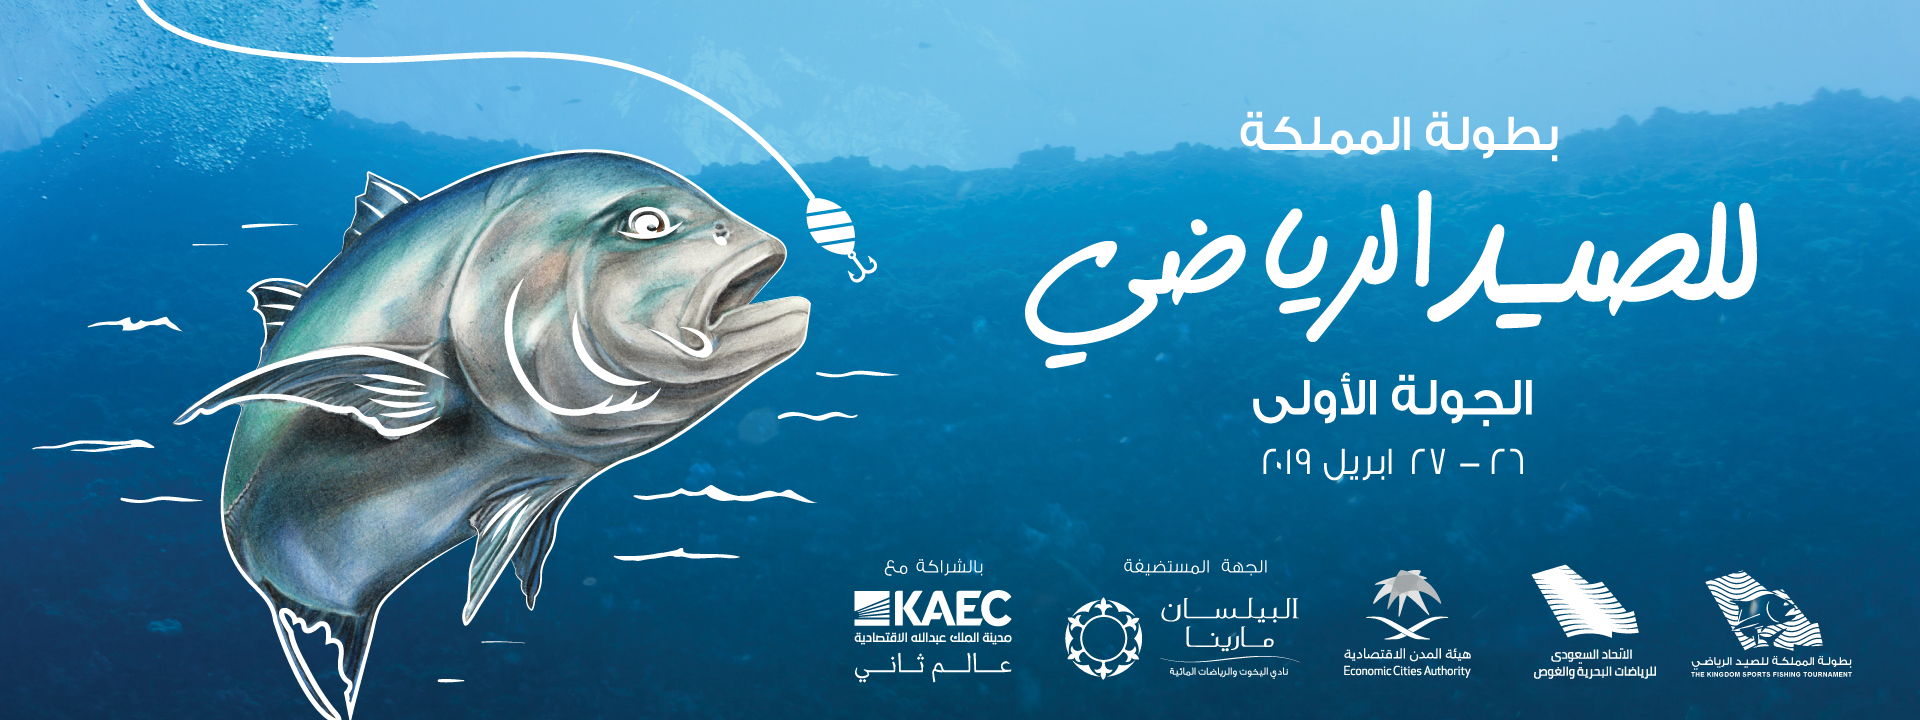 The Kingdom Sports for Fishing Tournaments - Visit KAEC